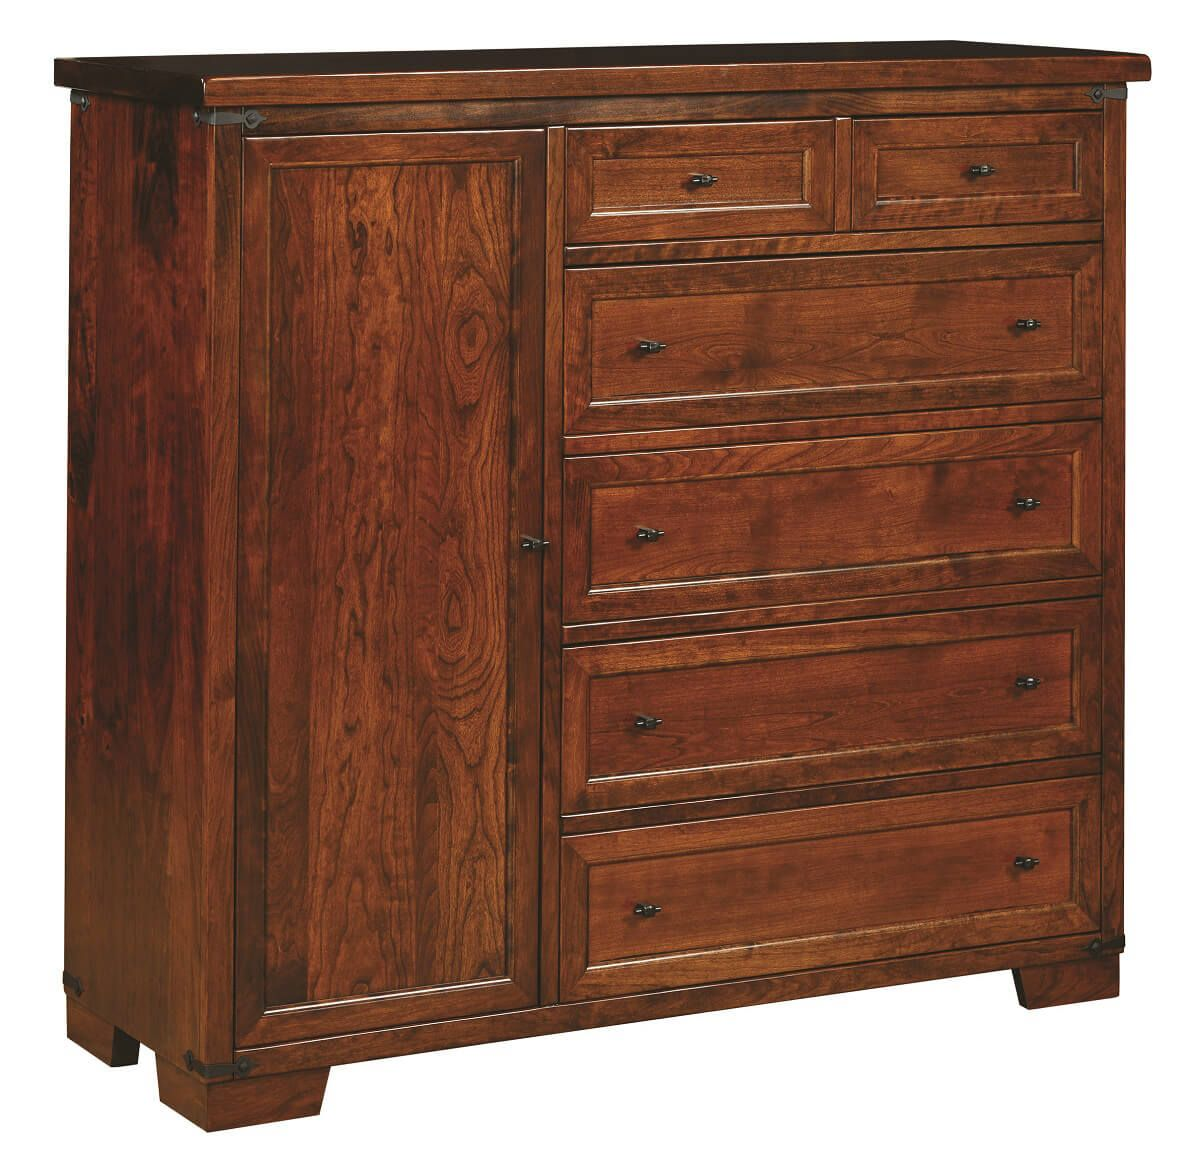 Corydon Gentlemans Chest